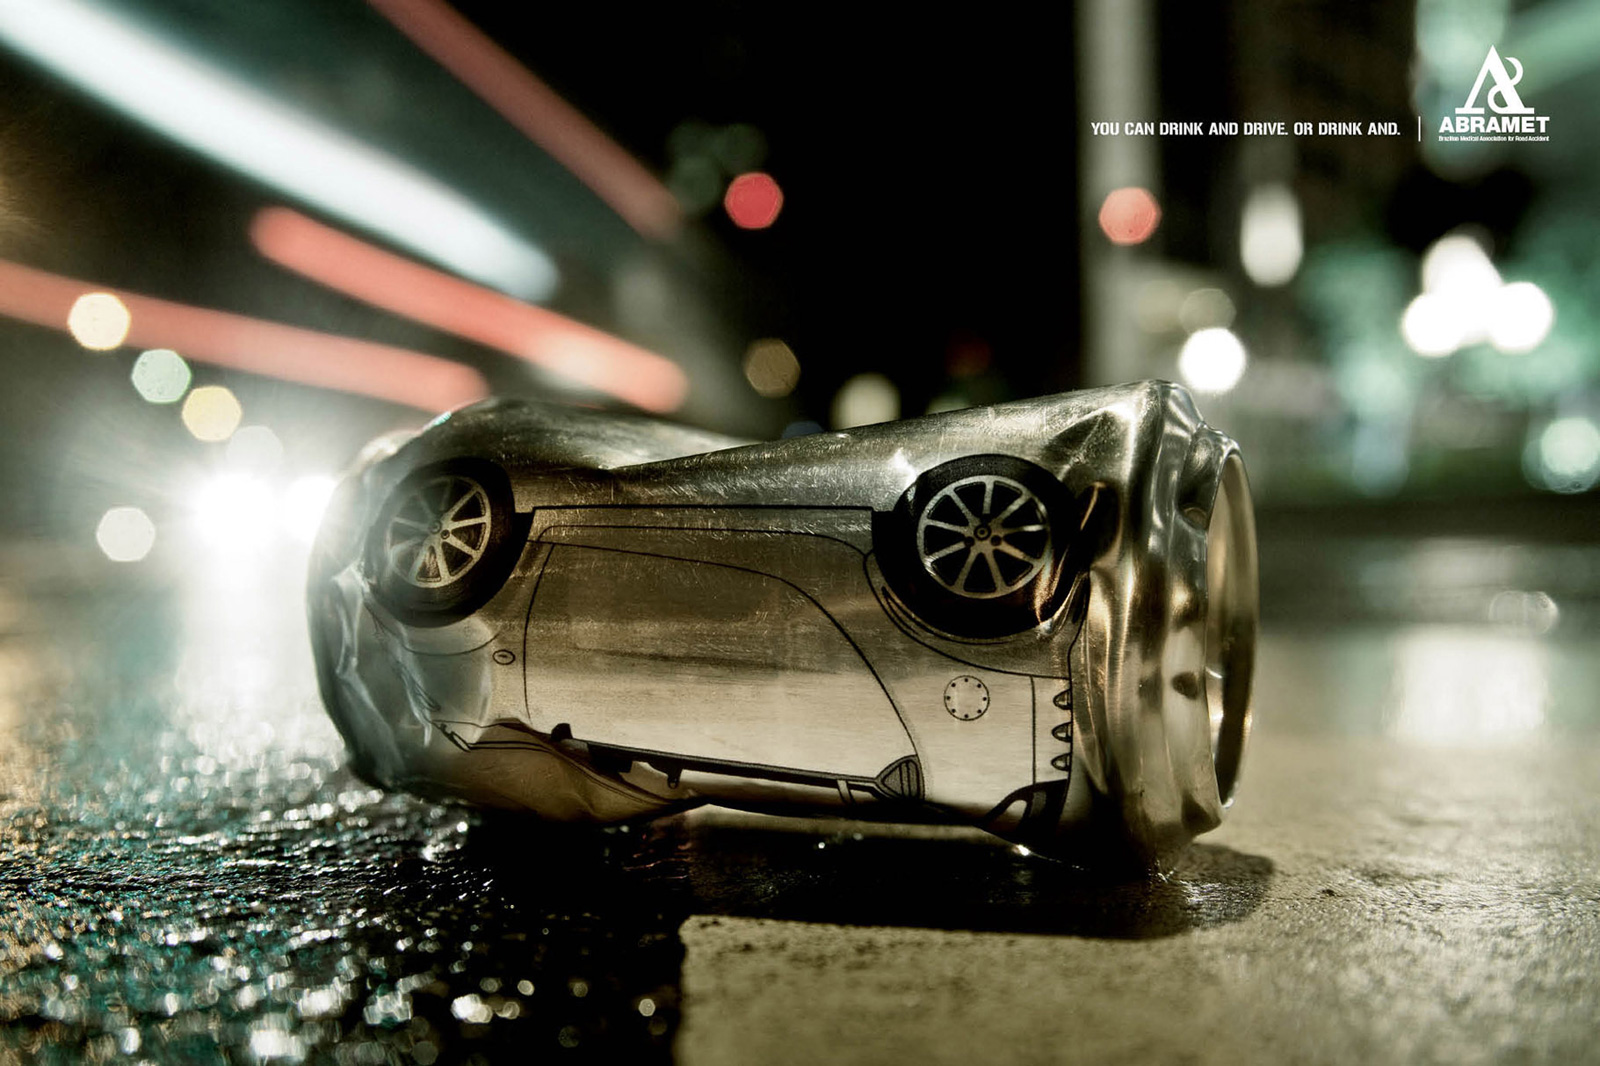 abramet print advert by drinking and driving ads of the world acirc cent  abramet print ad drinking and driving